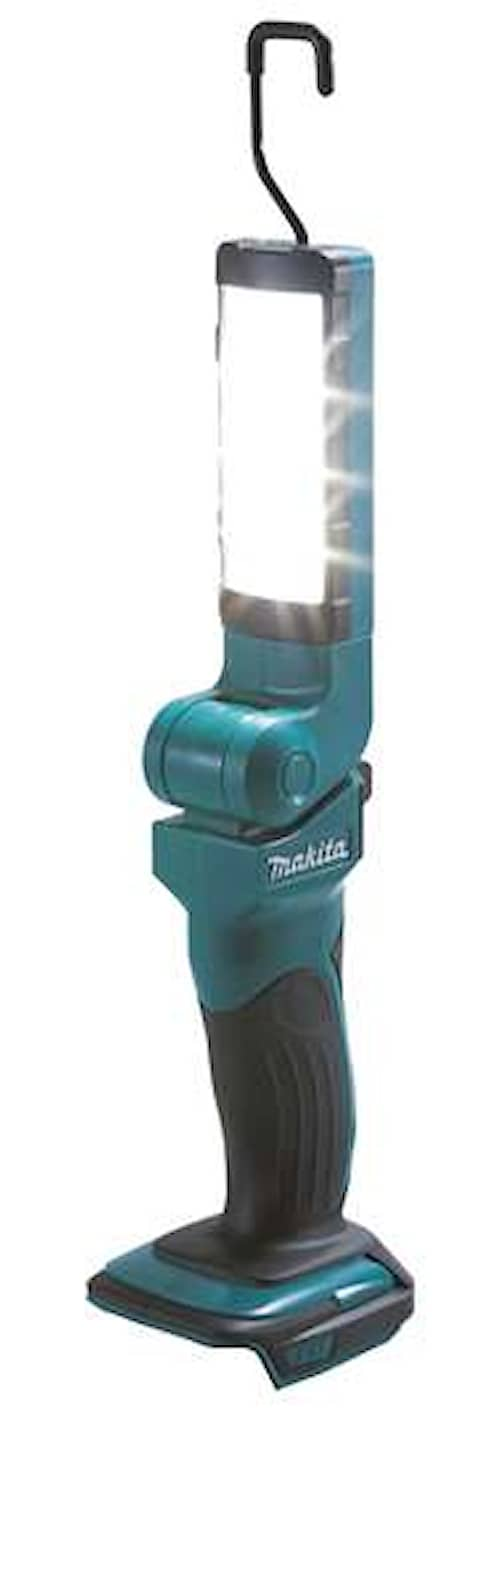 Makita Lampa DEADML801 LED 14,4/18V utan batteri & laddar